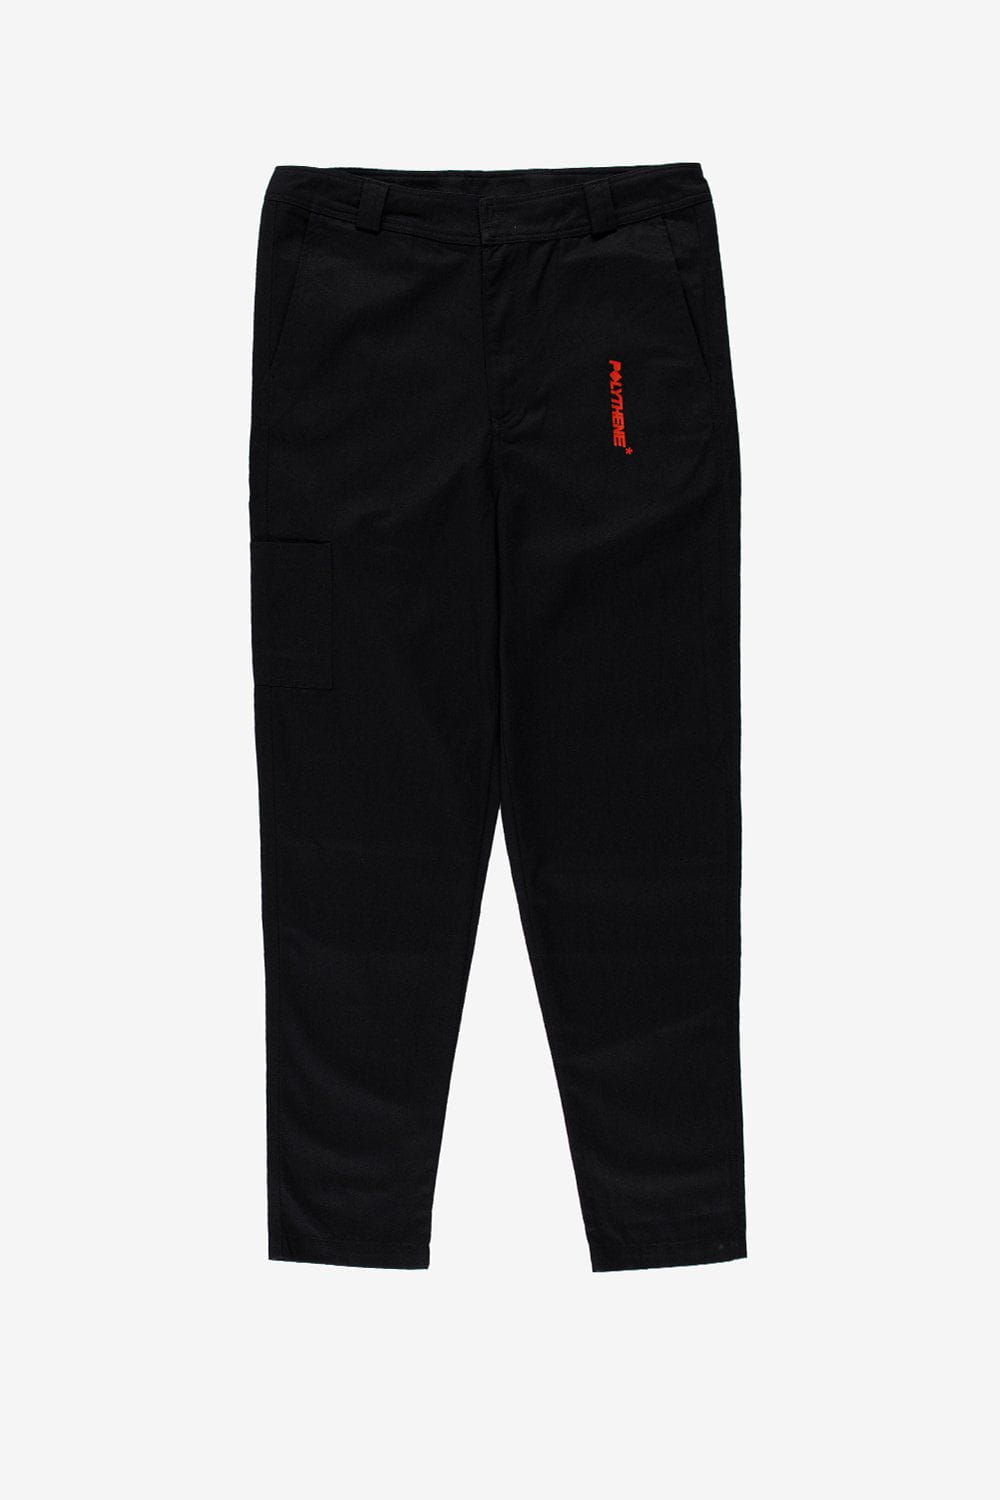 Polythene Optics Apparel Workwear Trousers Black